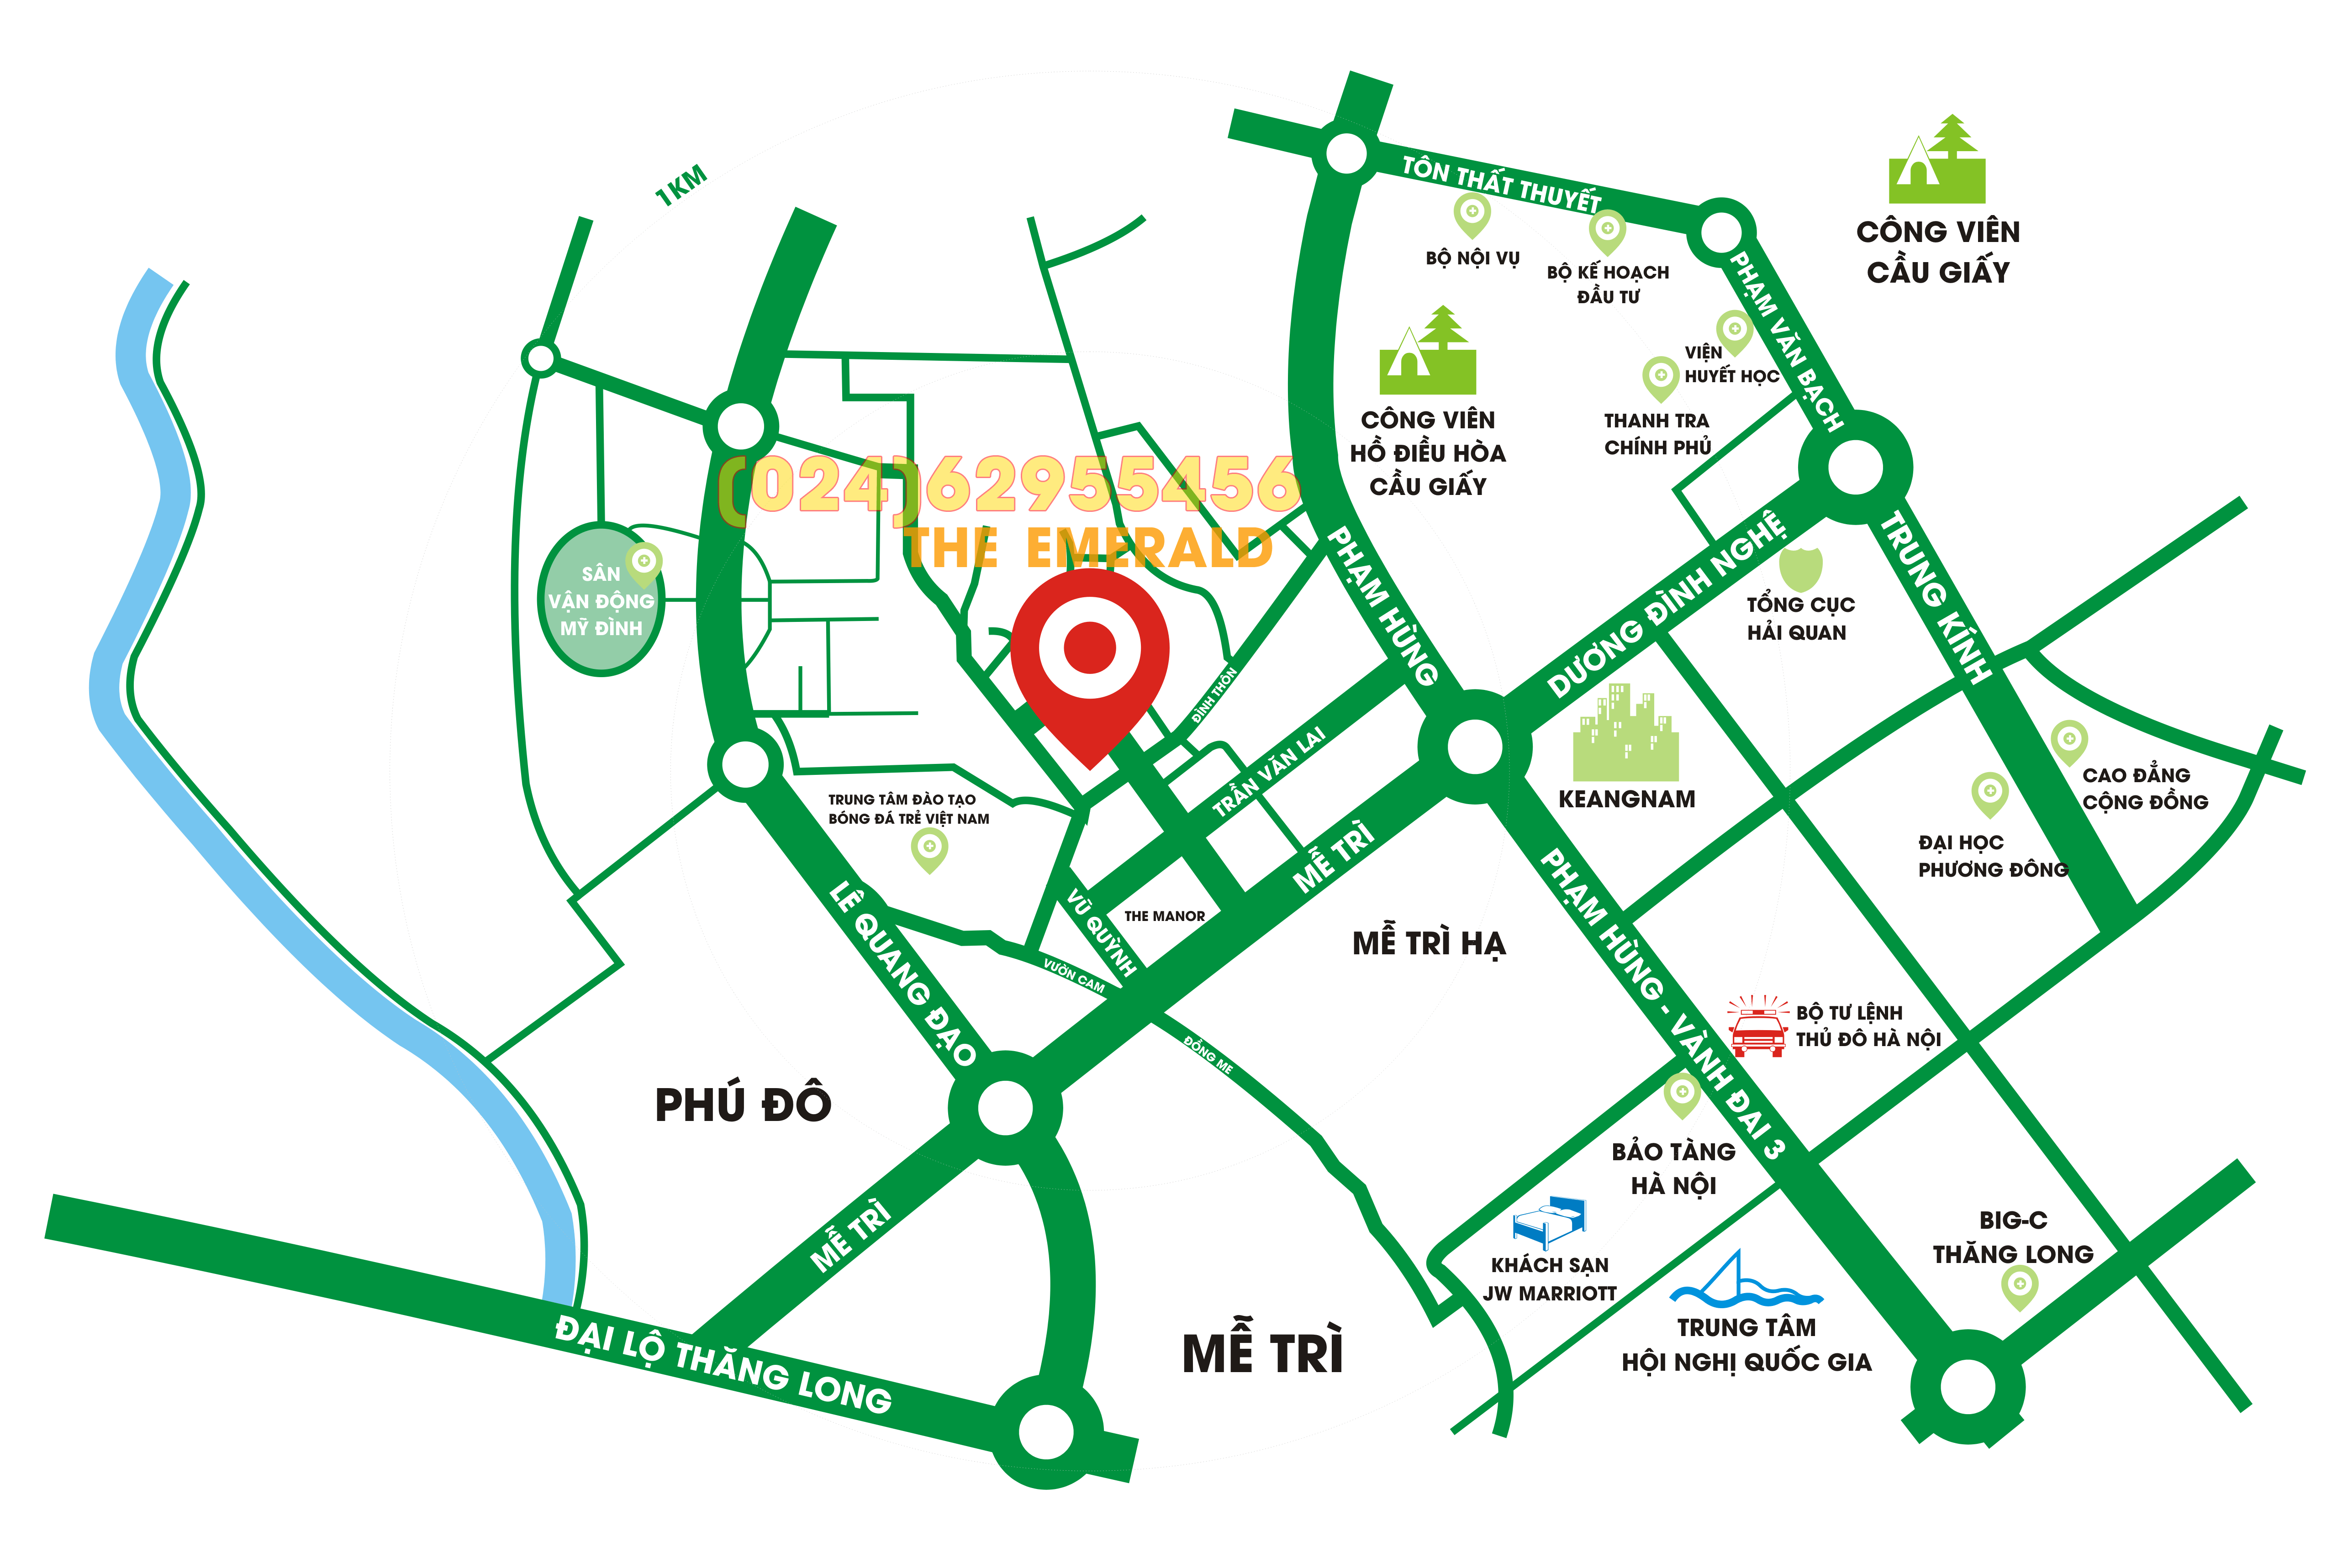 Map-Chung-cu-The-Emerald-CT8-My-Dinh-copy-1.png